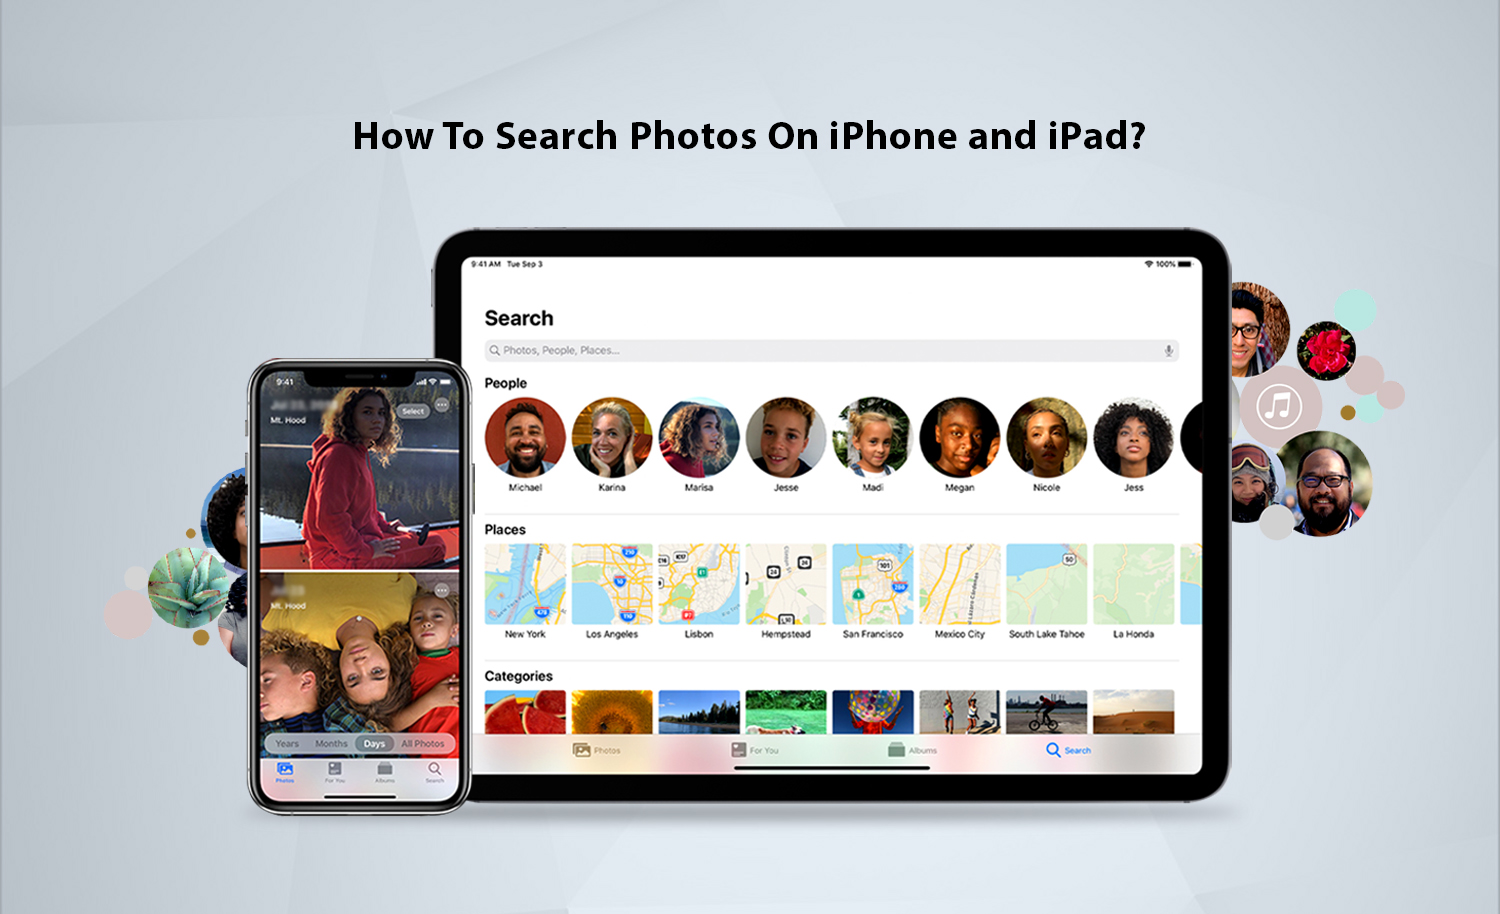 How To Search Photos On iPhone?